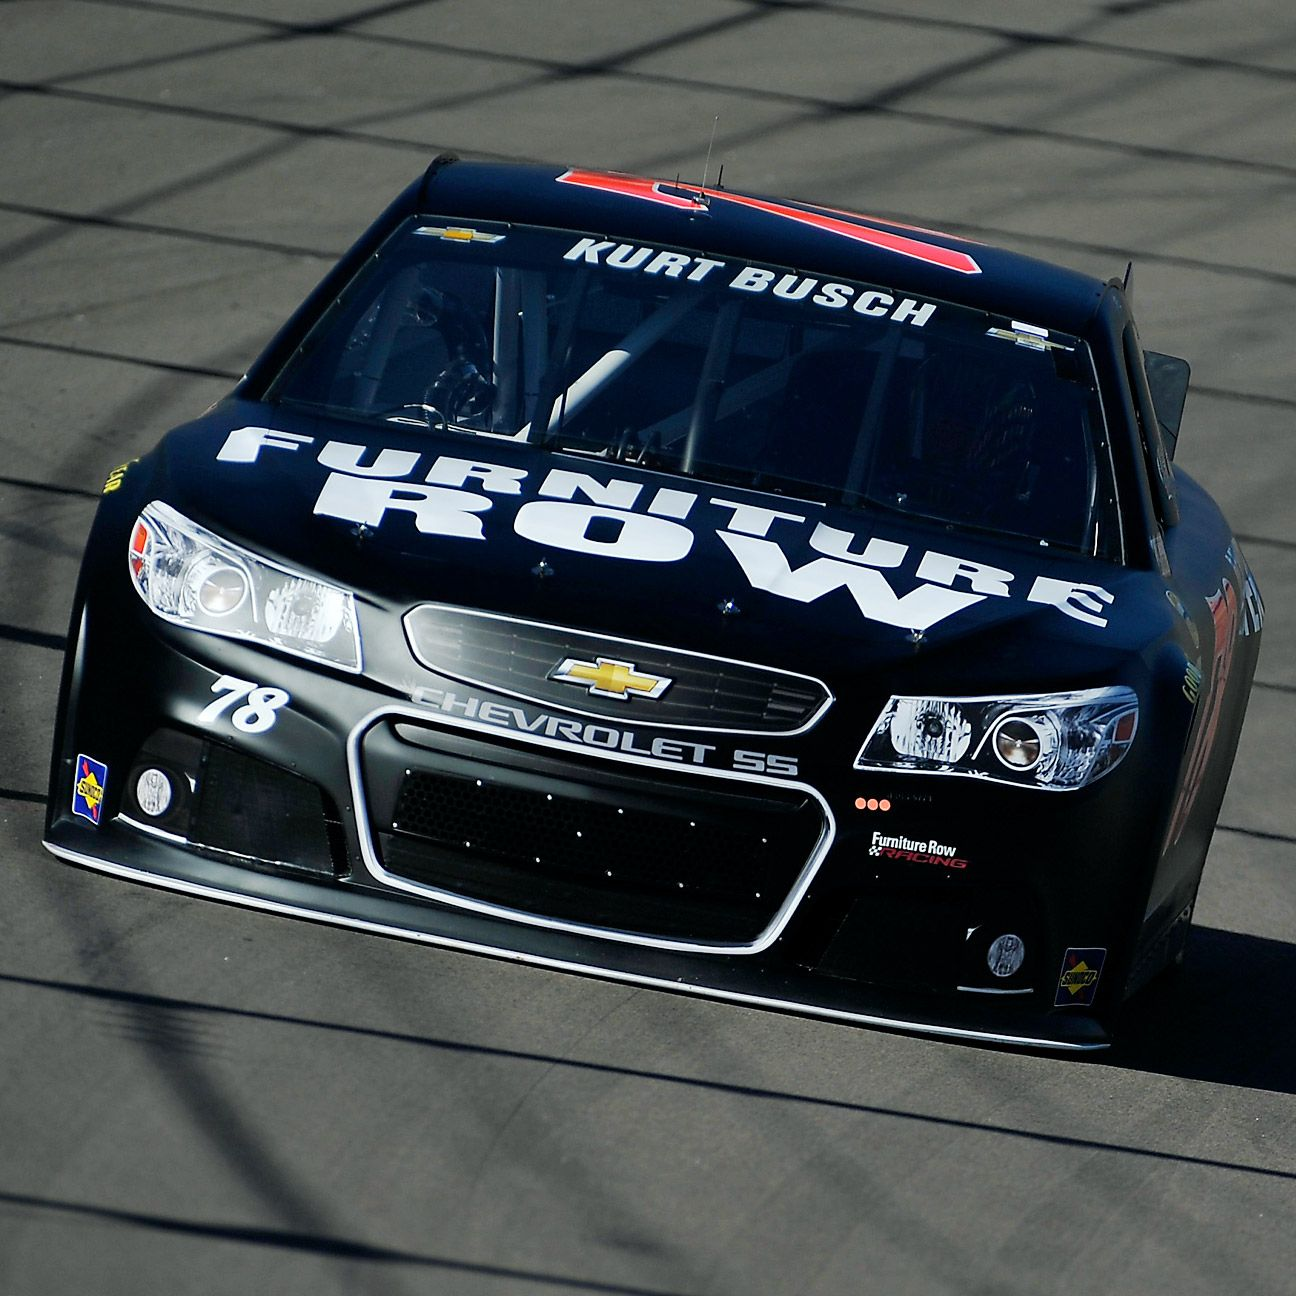 Nascar Furniture Row Racing 2014 Team Preview Sprint Cup Series